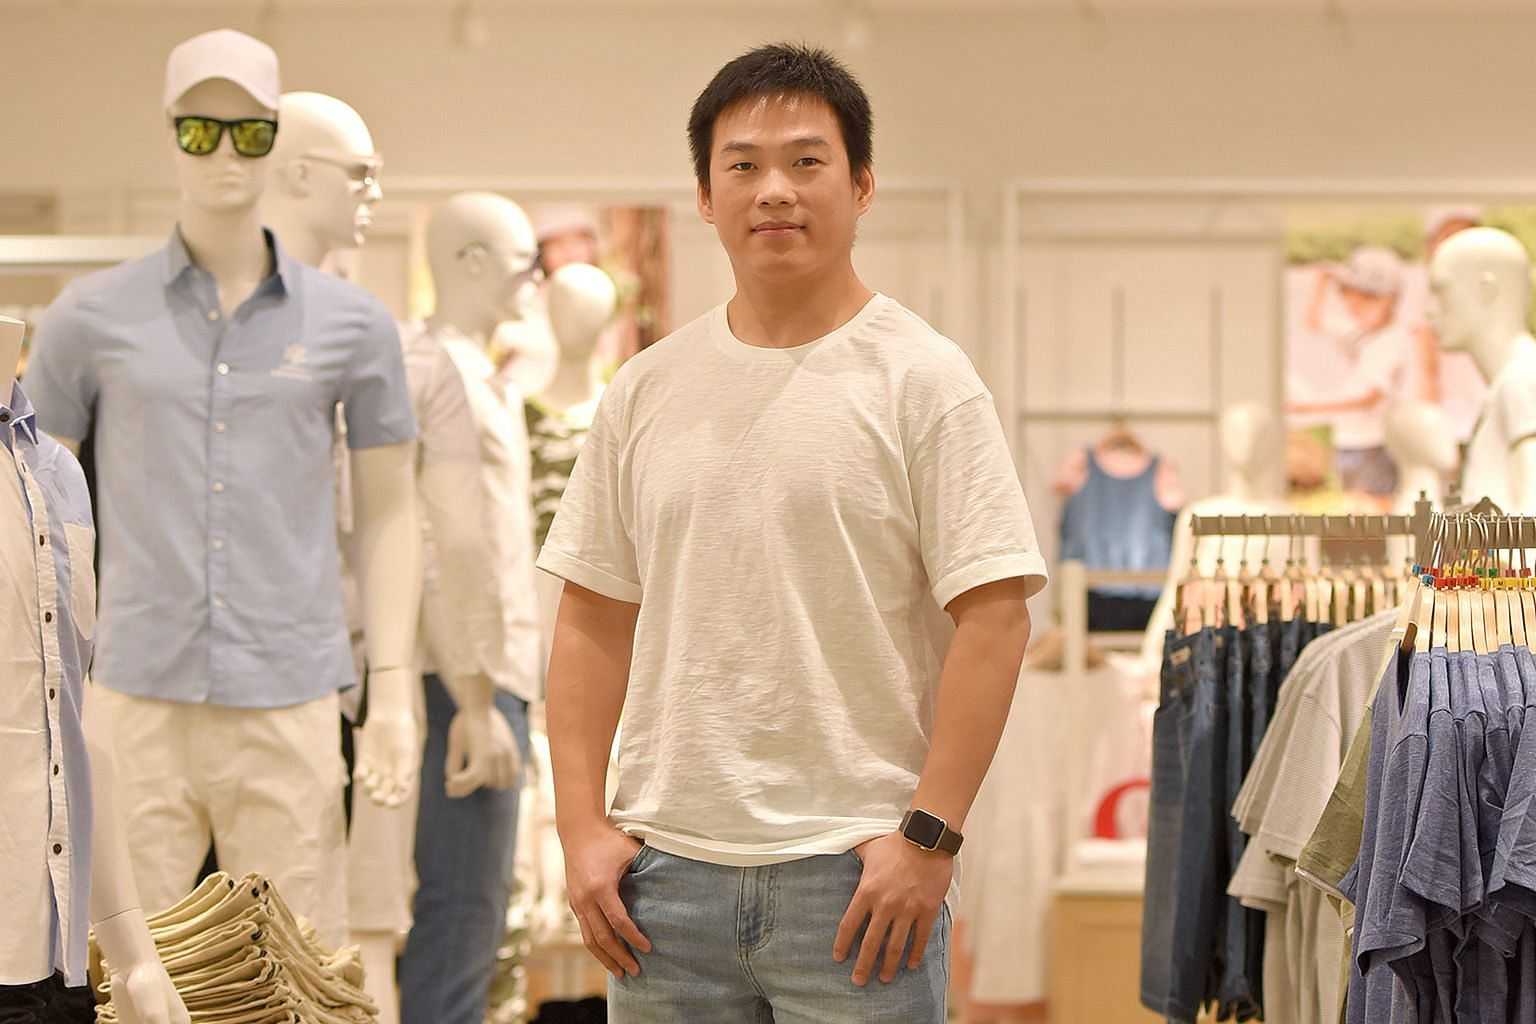 """""""Our quality is good, that's why our prices are not low-end,"""" said Yishion general manager Raymond Shen. The retailer sends all its clothing to quality control labs in China before shipping it."""